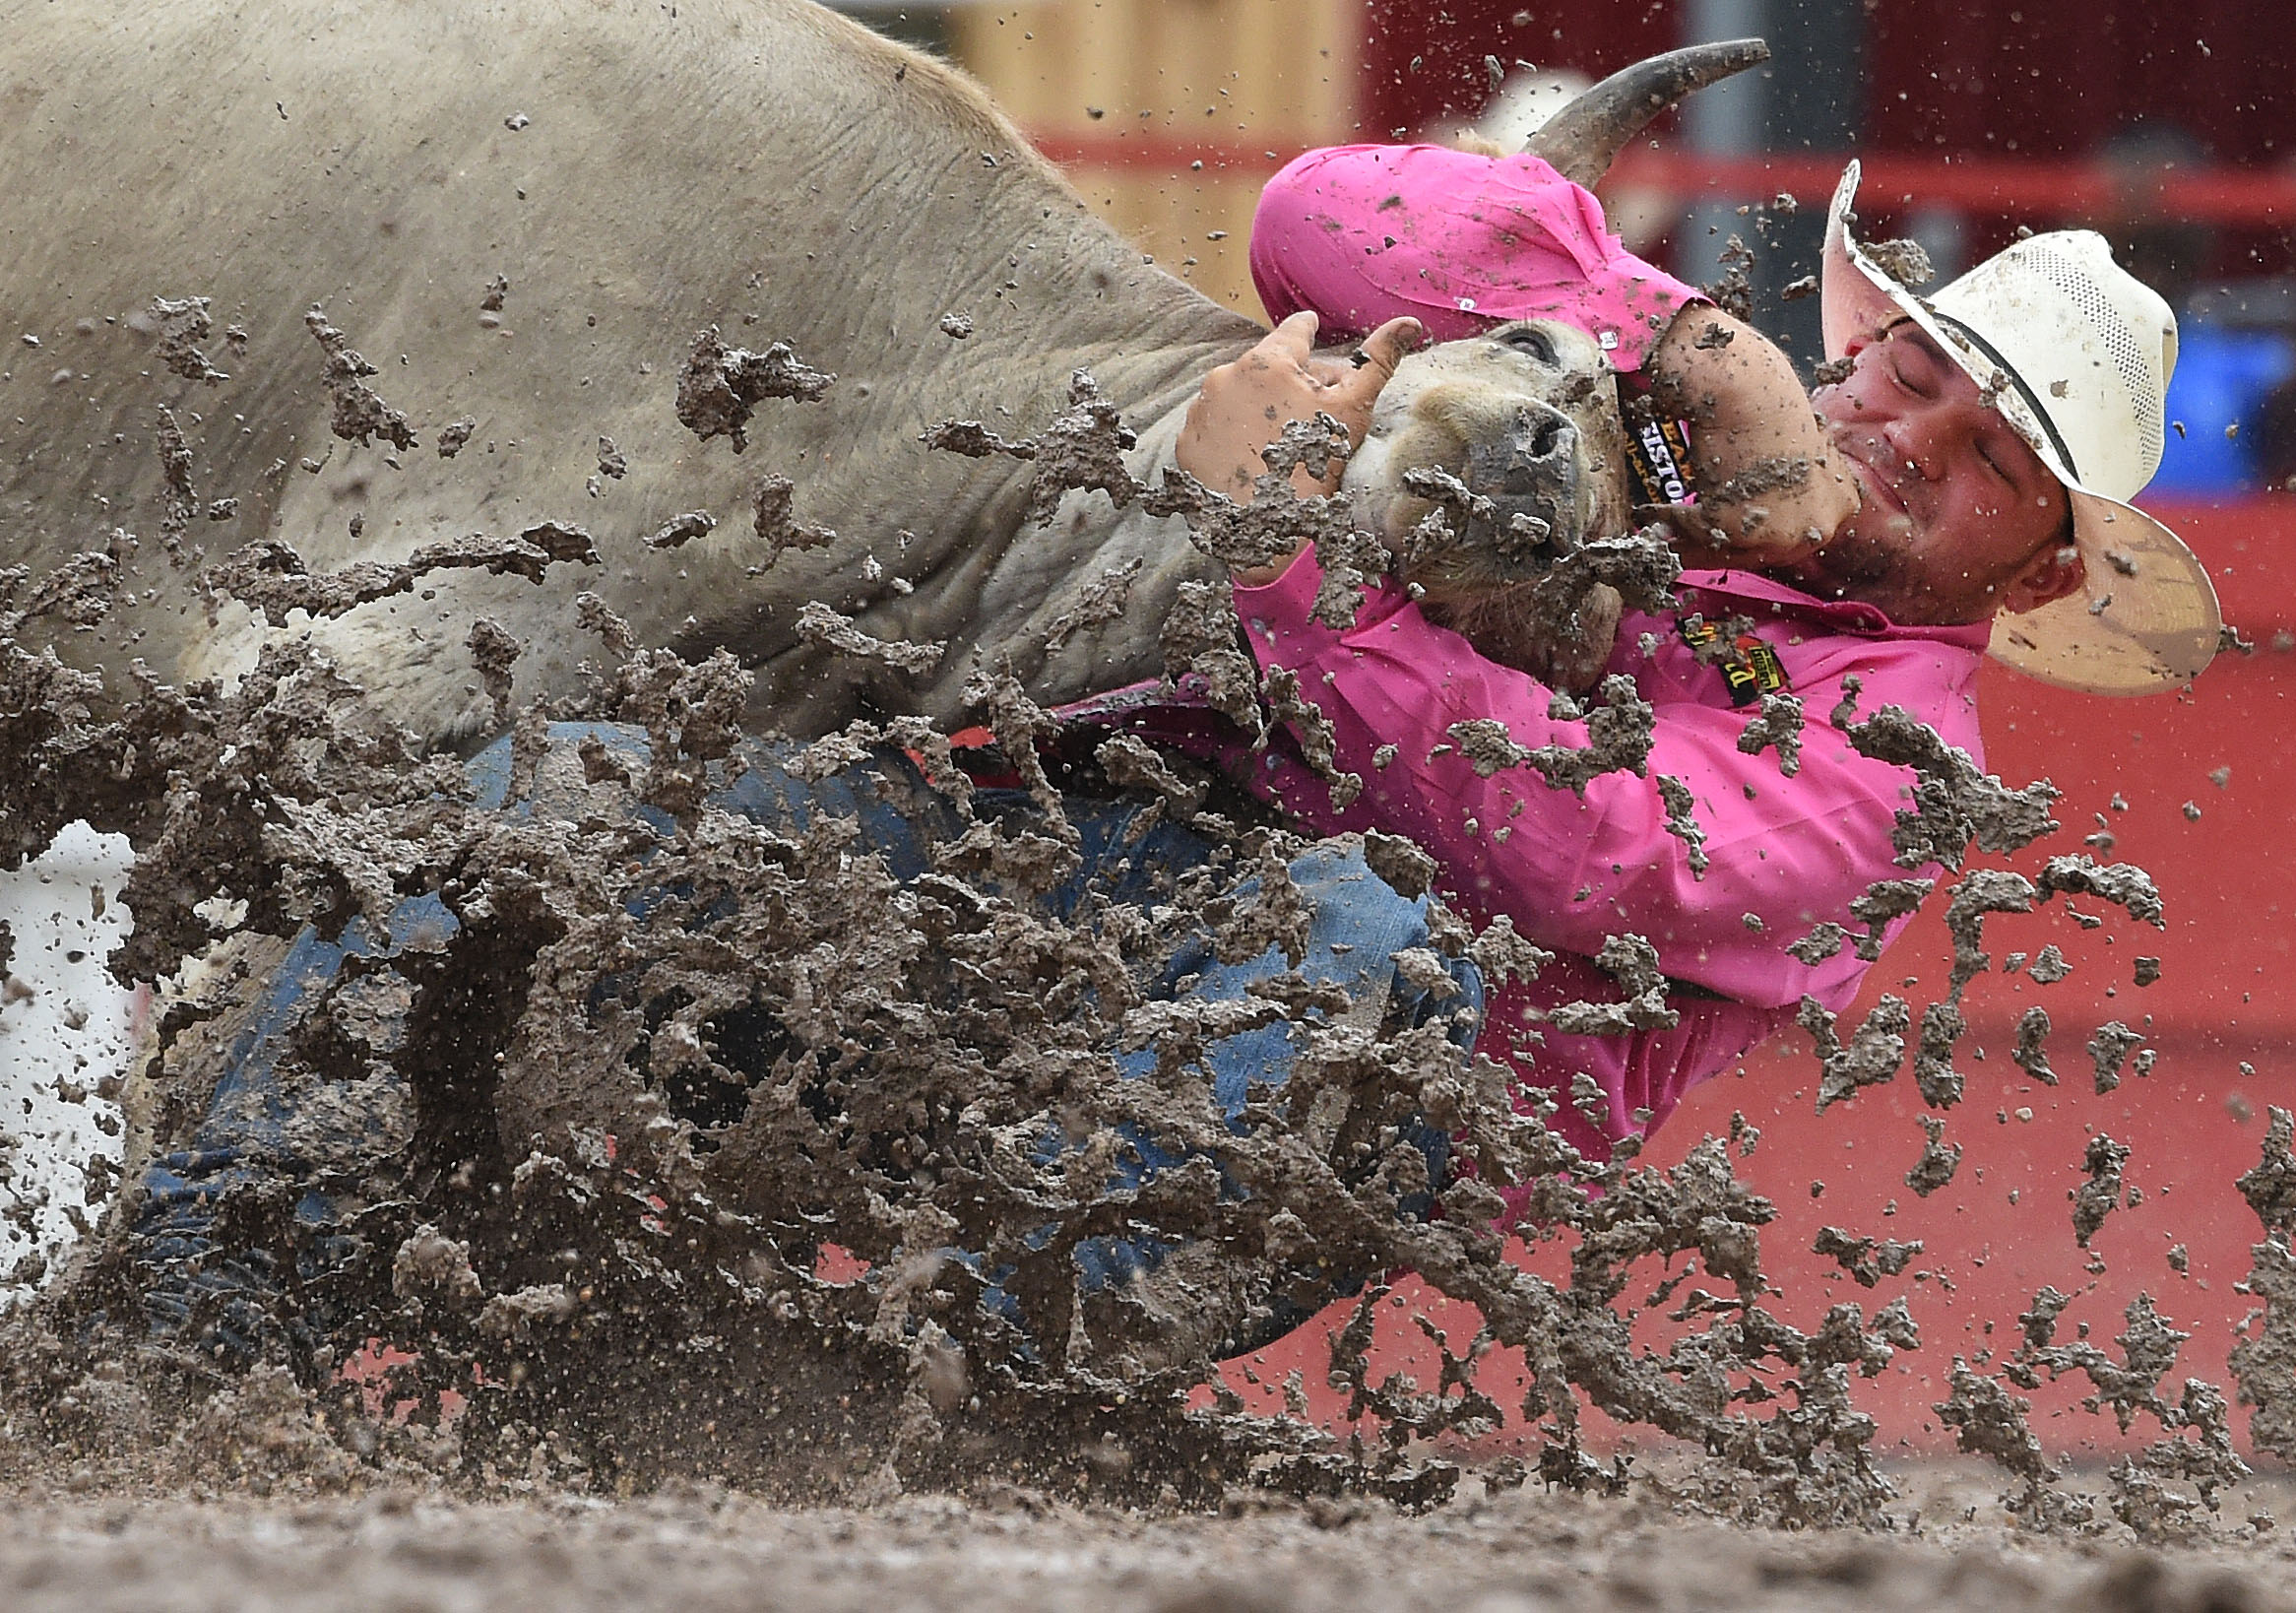 Bulldogger Mike McGinn, from Haines, Oregon, fights to bring down his steer as mud flies during the 7th performance at the 122nd Cheyenne Frontier Days Rodeo at Frontier Park in Cheyenne, Wyoming Thursday, July 26, 2018. A massive thunderstorm passed through the area making the arena a muddy mess for competitors.